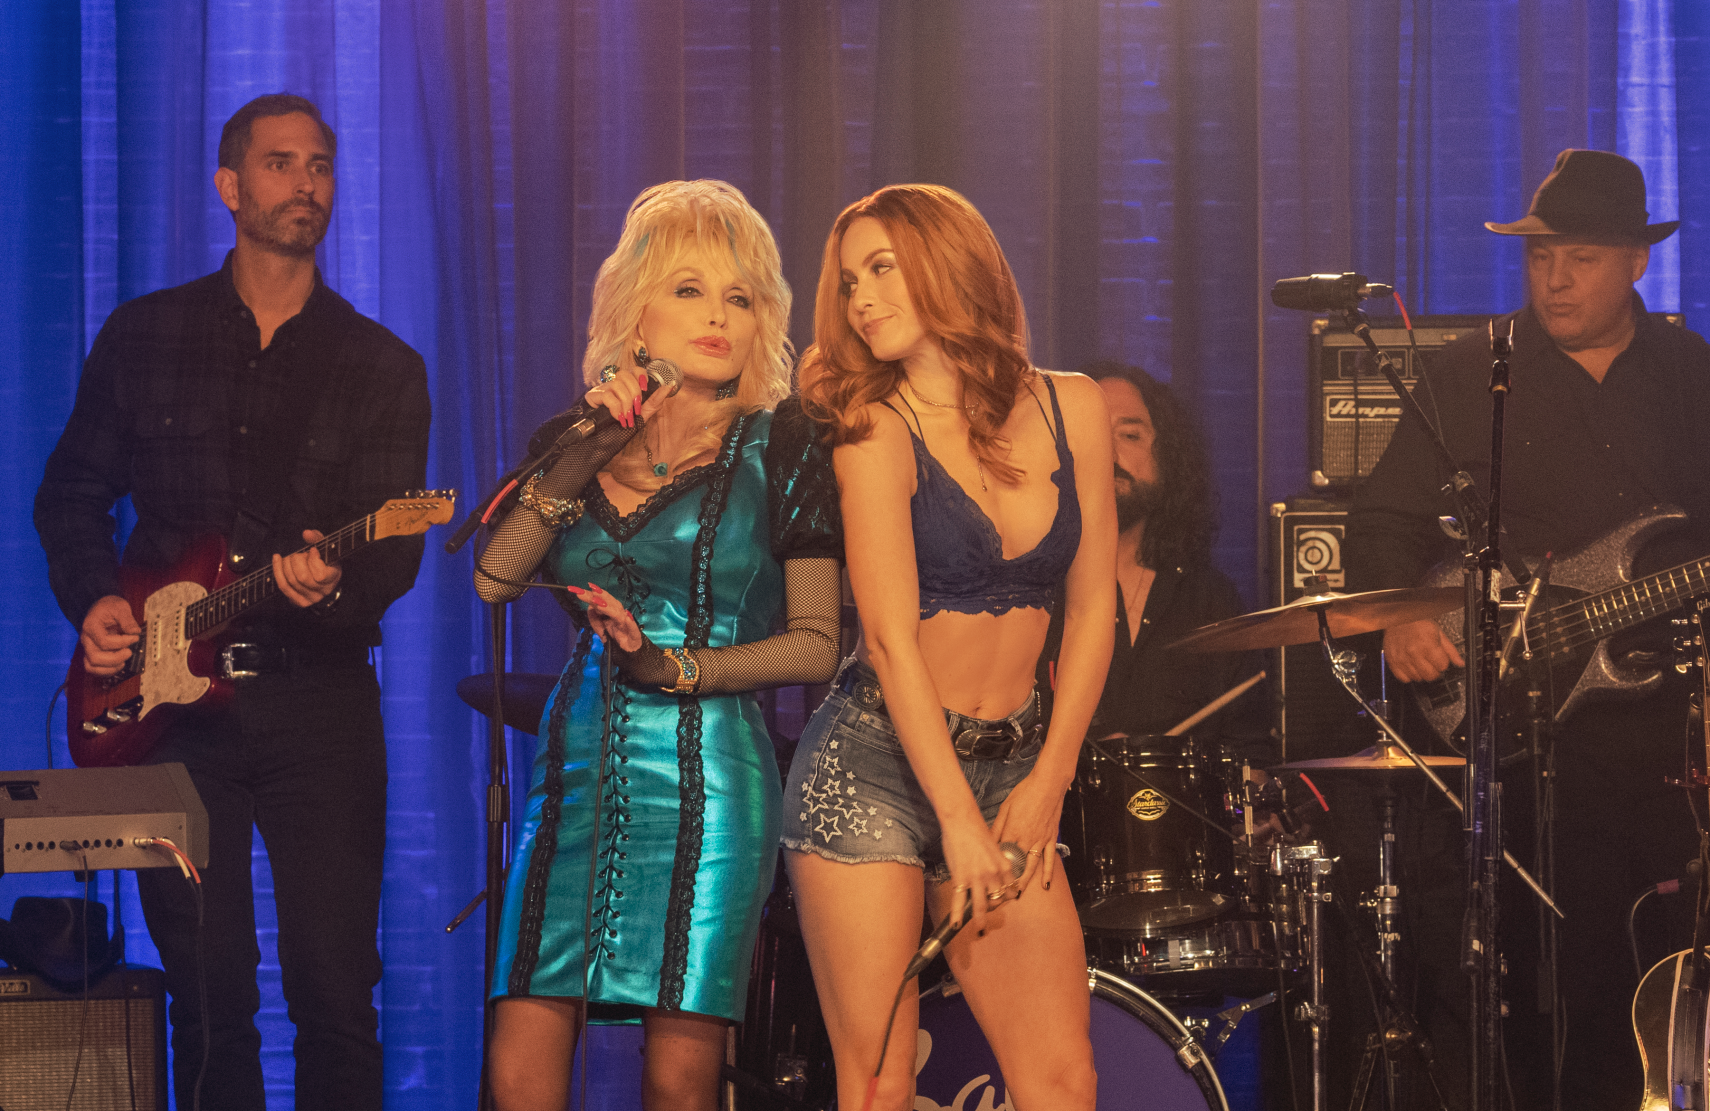 Dolly Parton lights up the screen every time she appears in Heartstrings, here alongside Julianne Hough, who plays Jolene from Parton's iconic song. (Netflix)